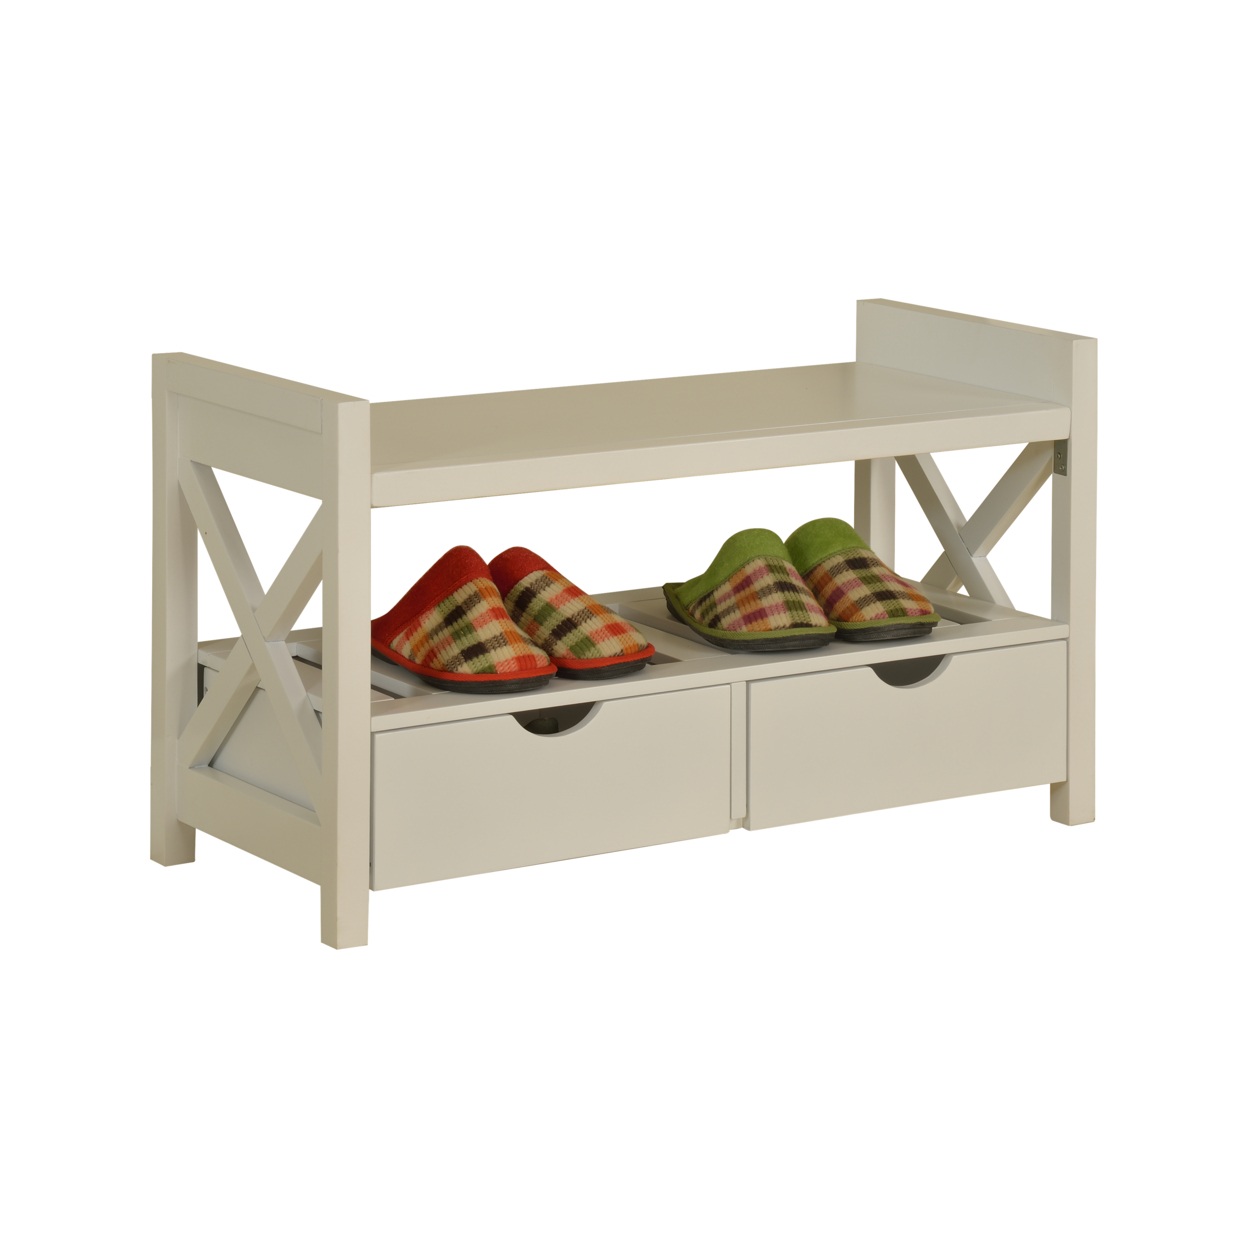 Very Impressive portraiture of Pine Storage Bench With Drawers Search with #AF361C color and 1248x1248 pixels